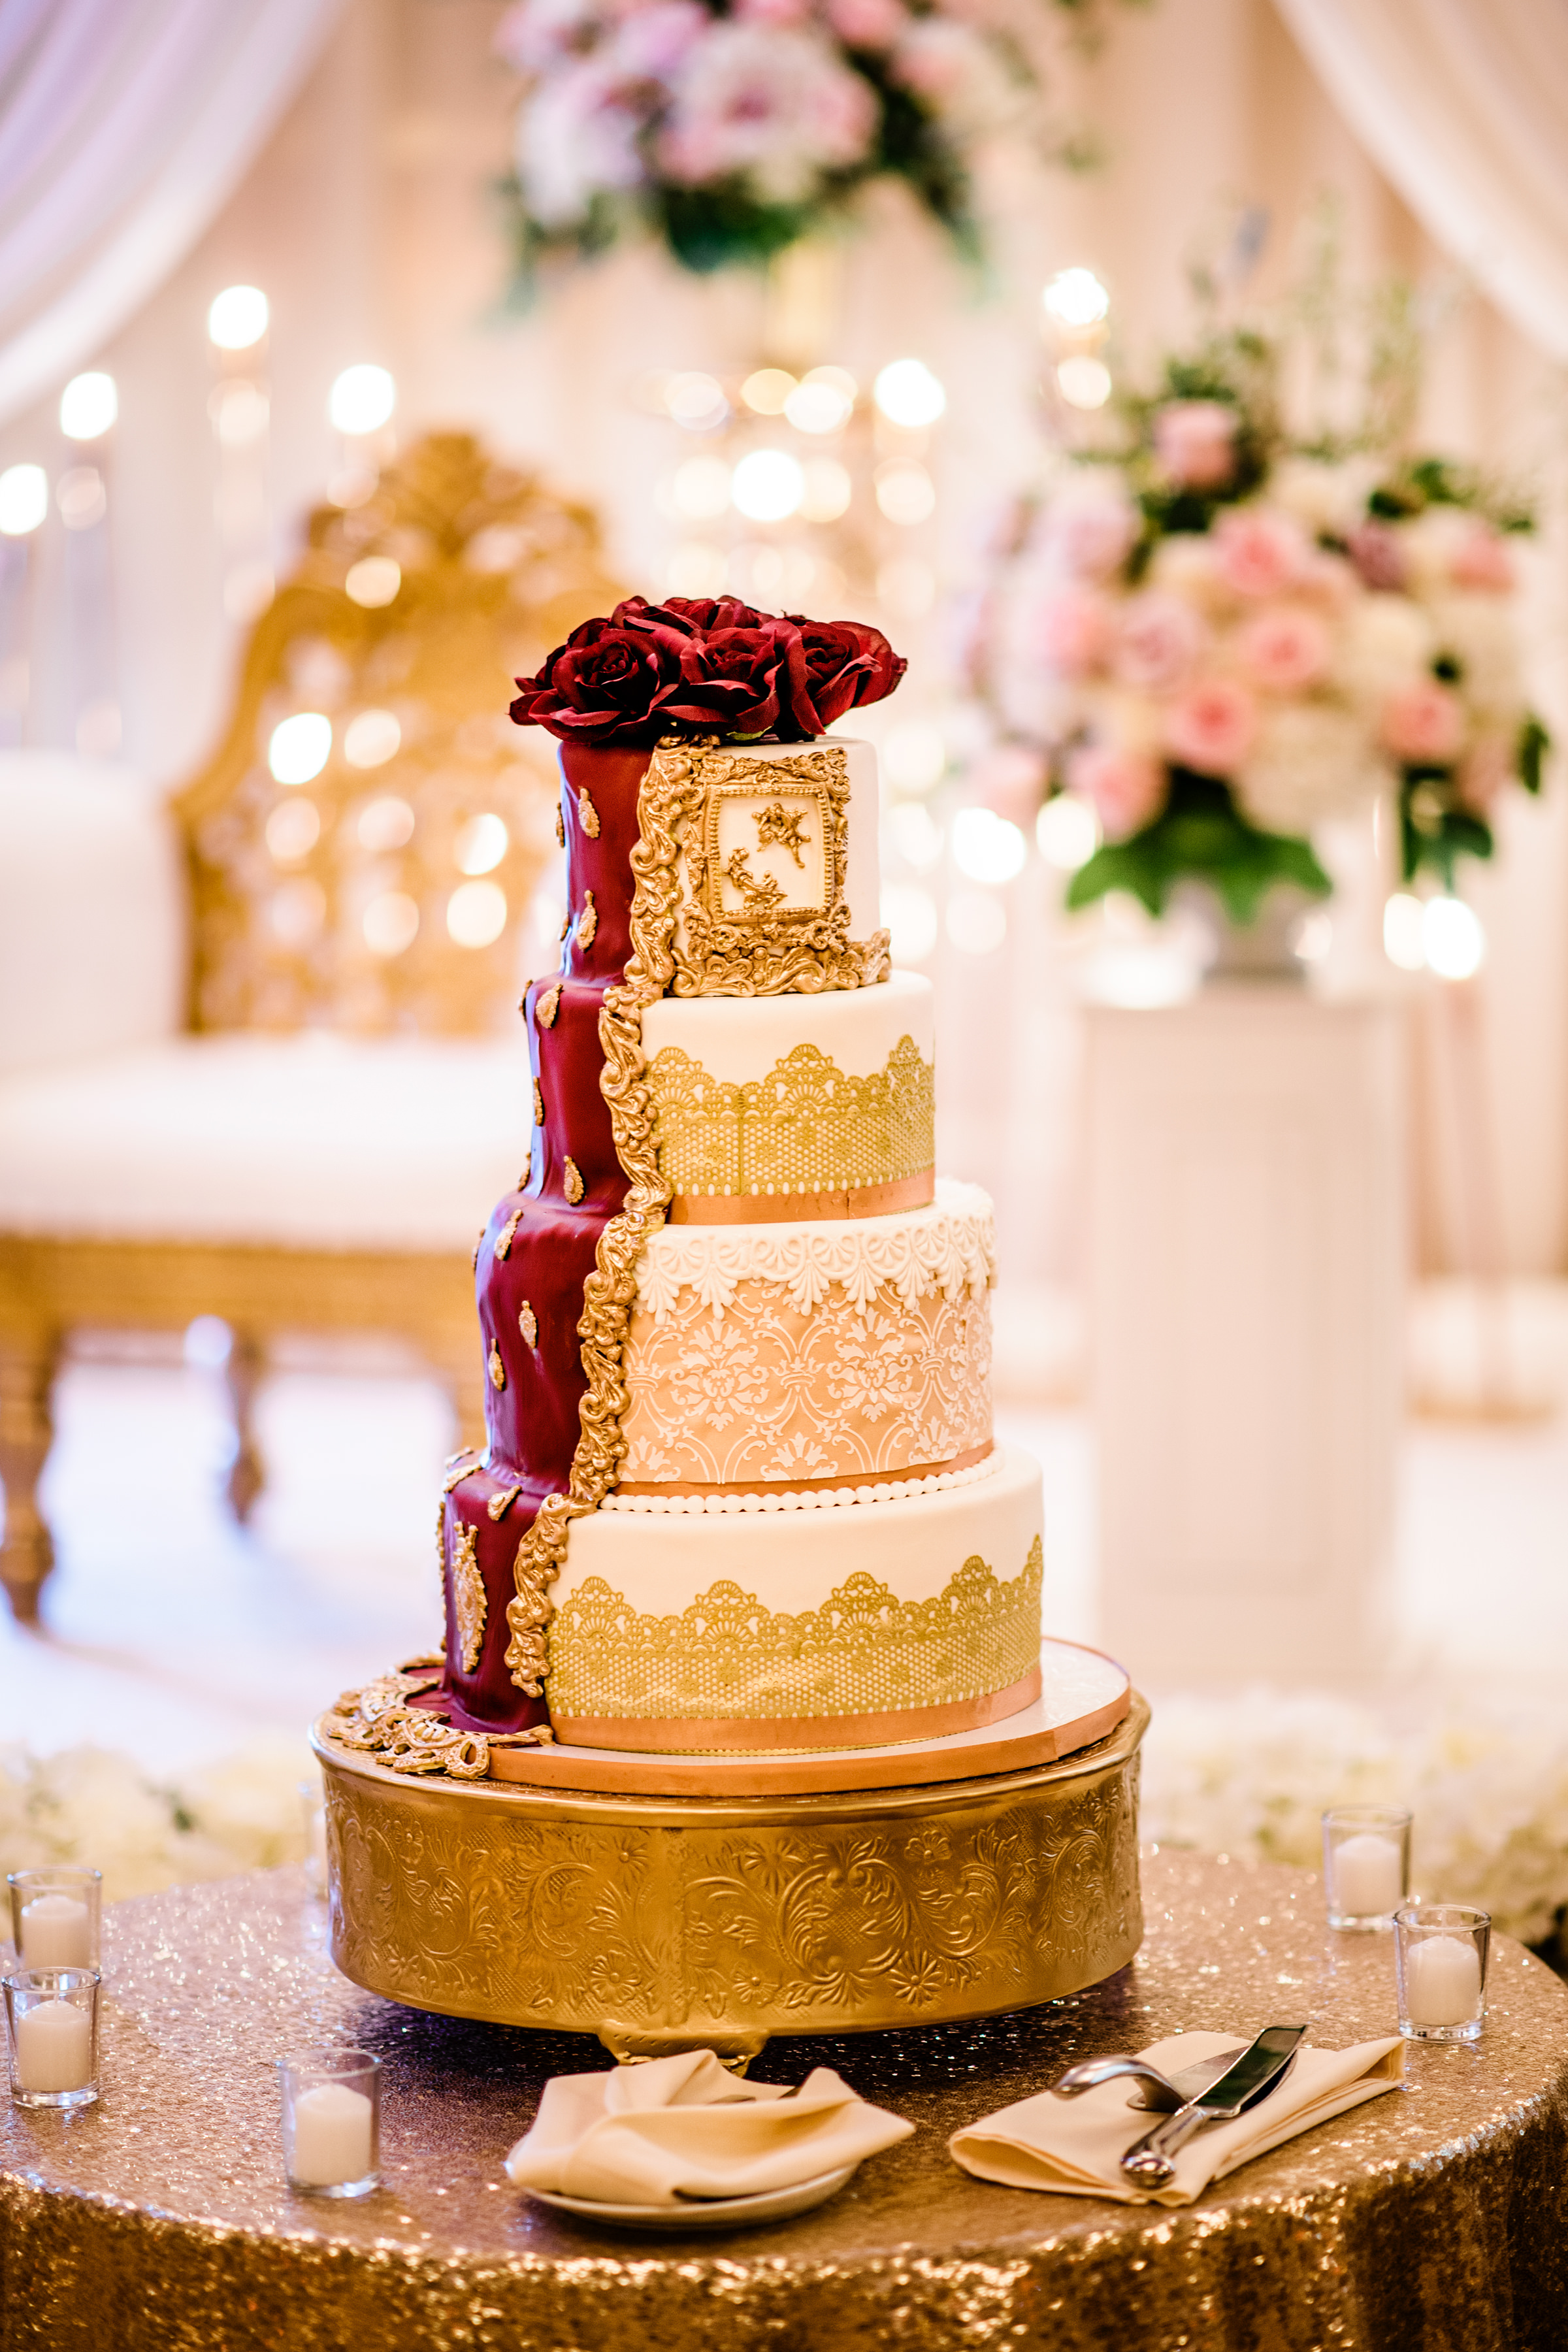 Tiered wedding cake with red roses - photo by Alante Photography